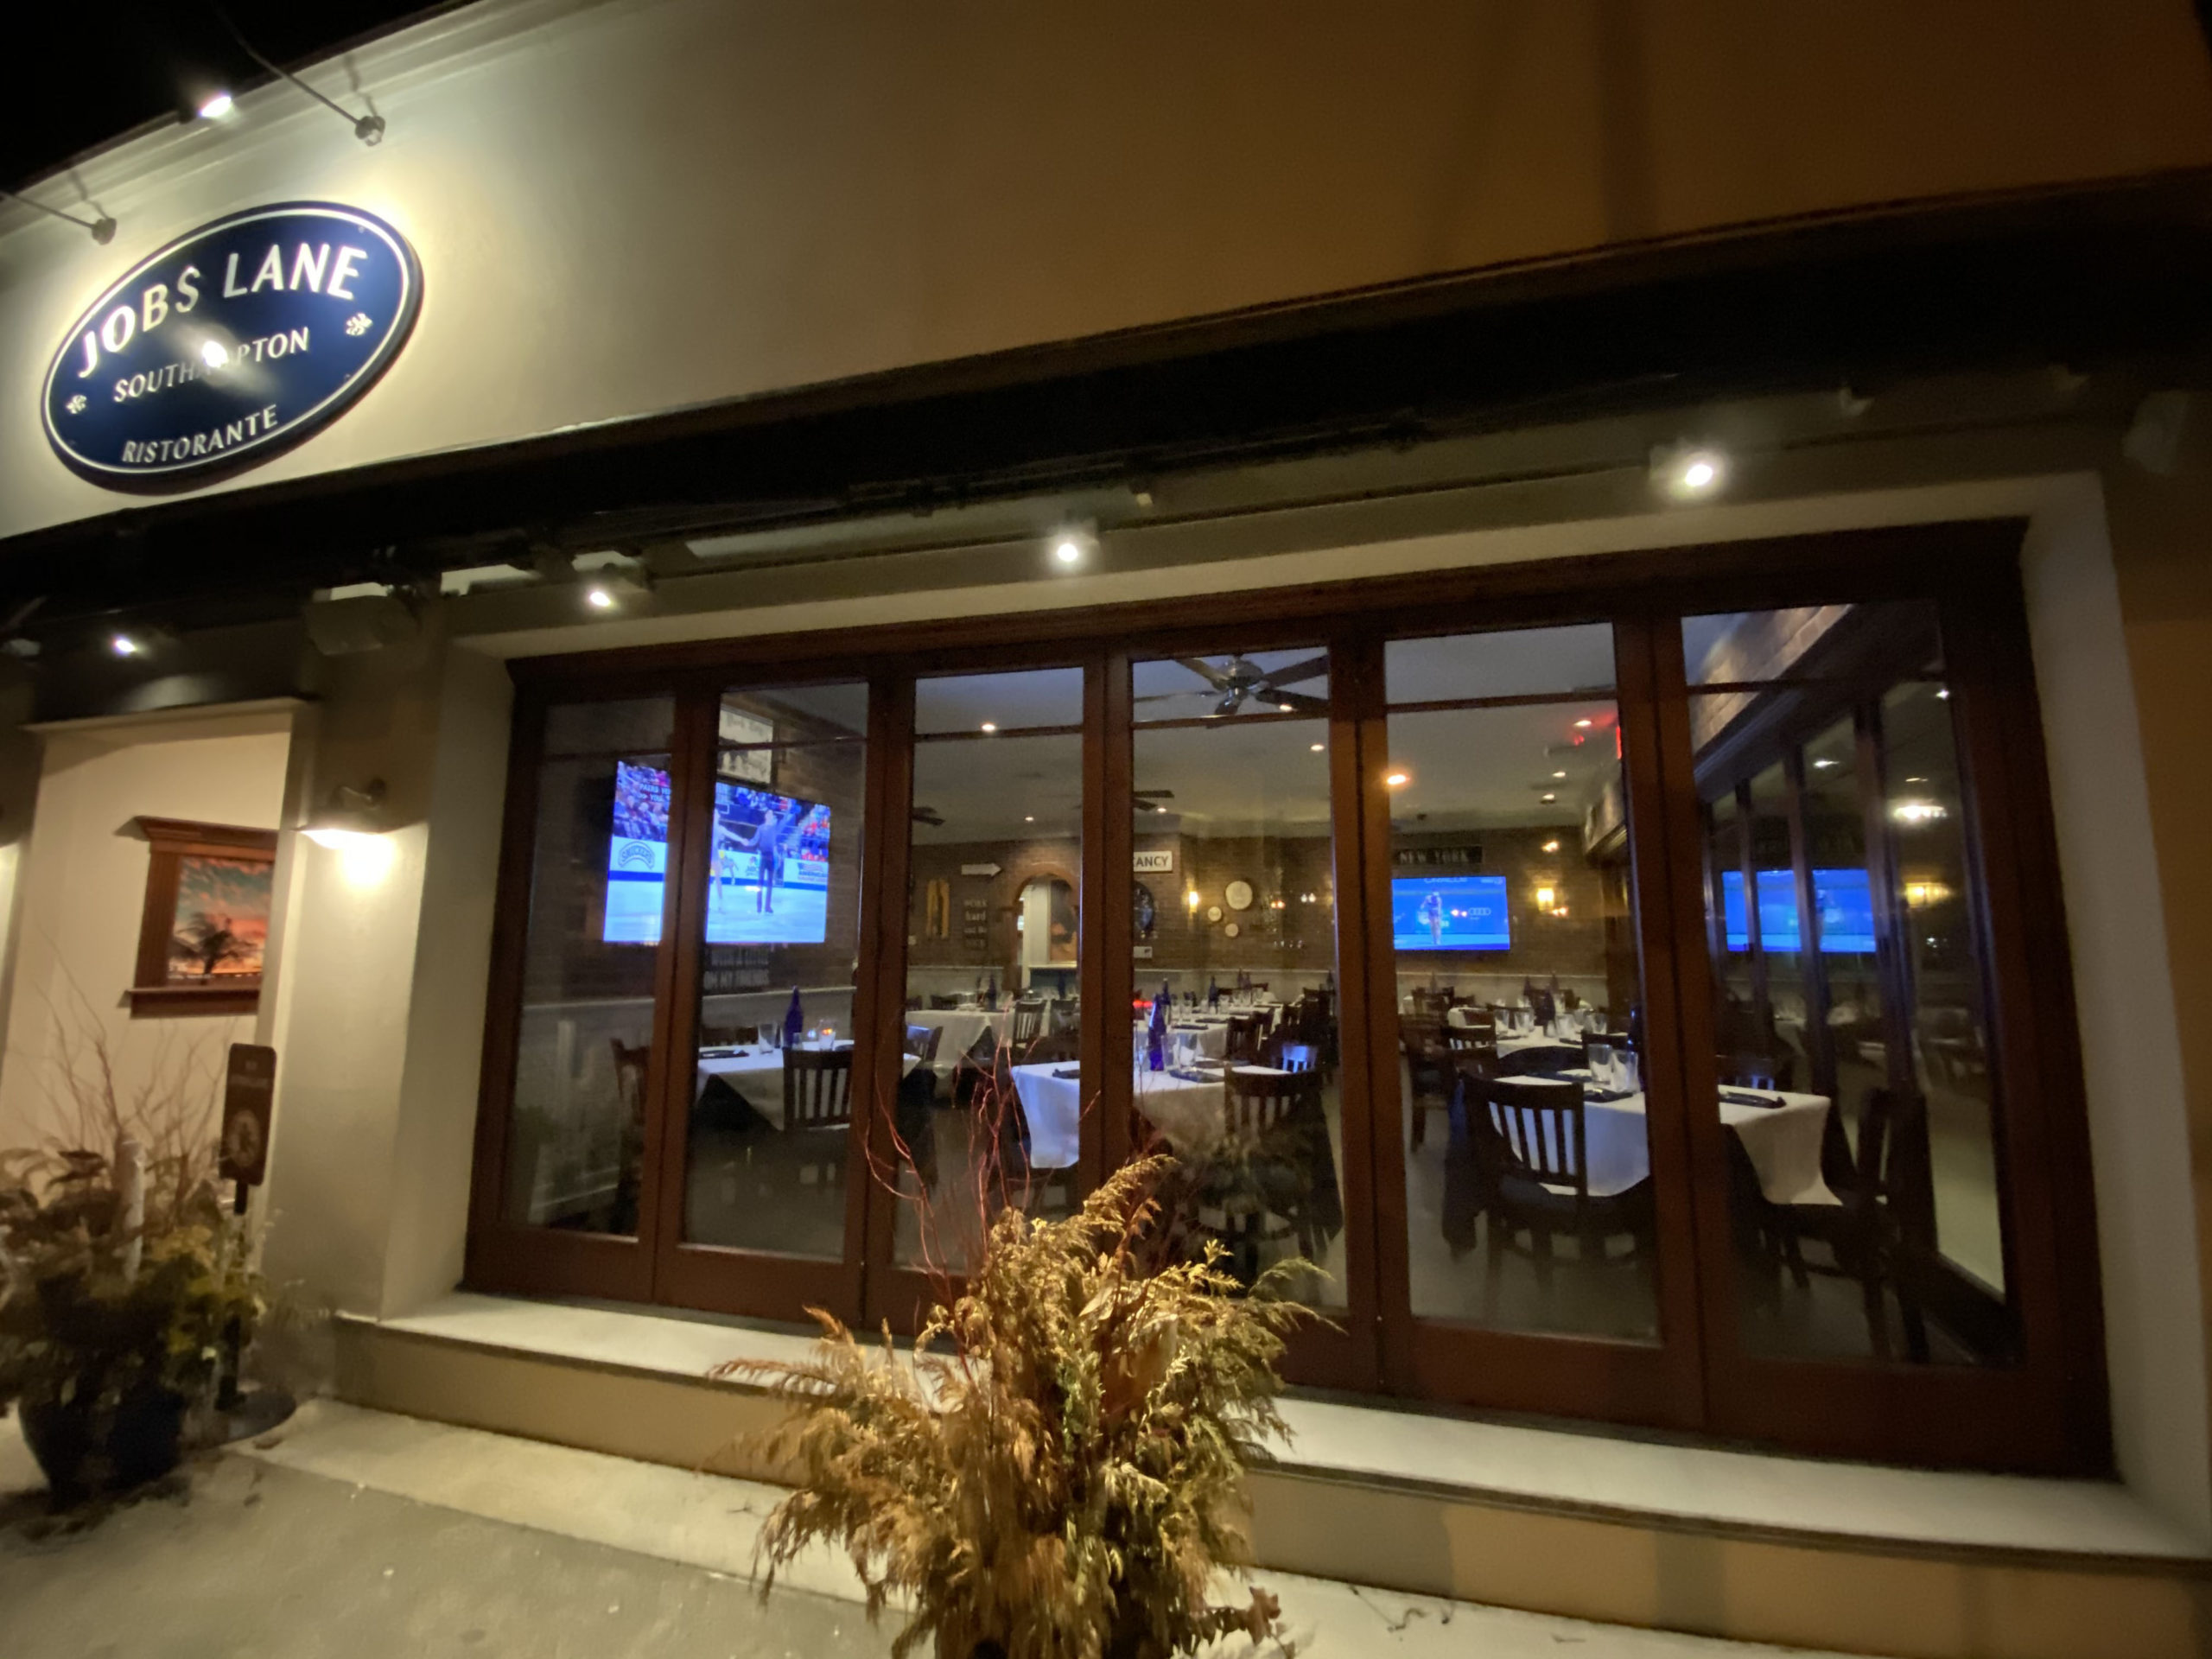 Jobs Lane Ristorante in Southampton Village was closed to diners on Sunday evening, but offering takeout.   DANA SHAW